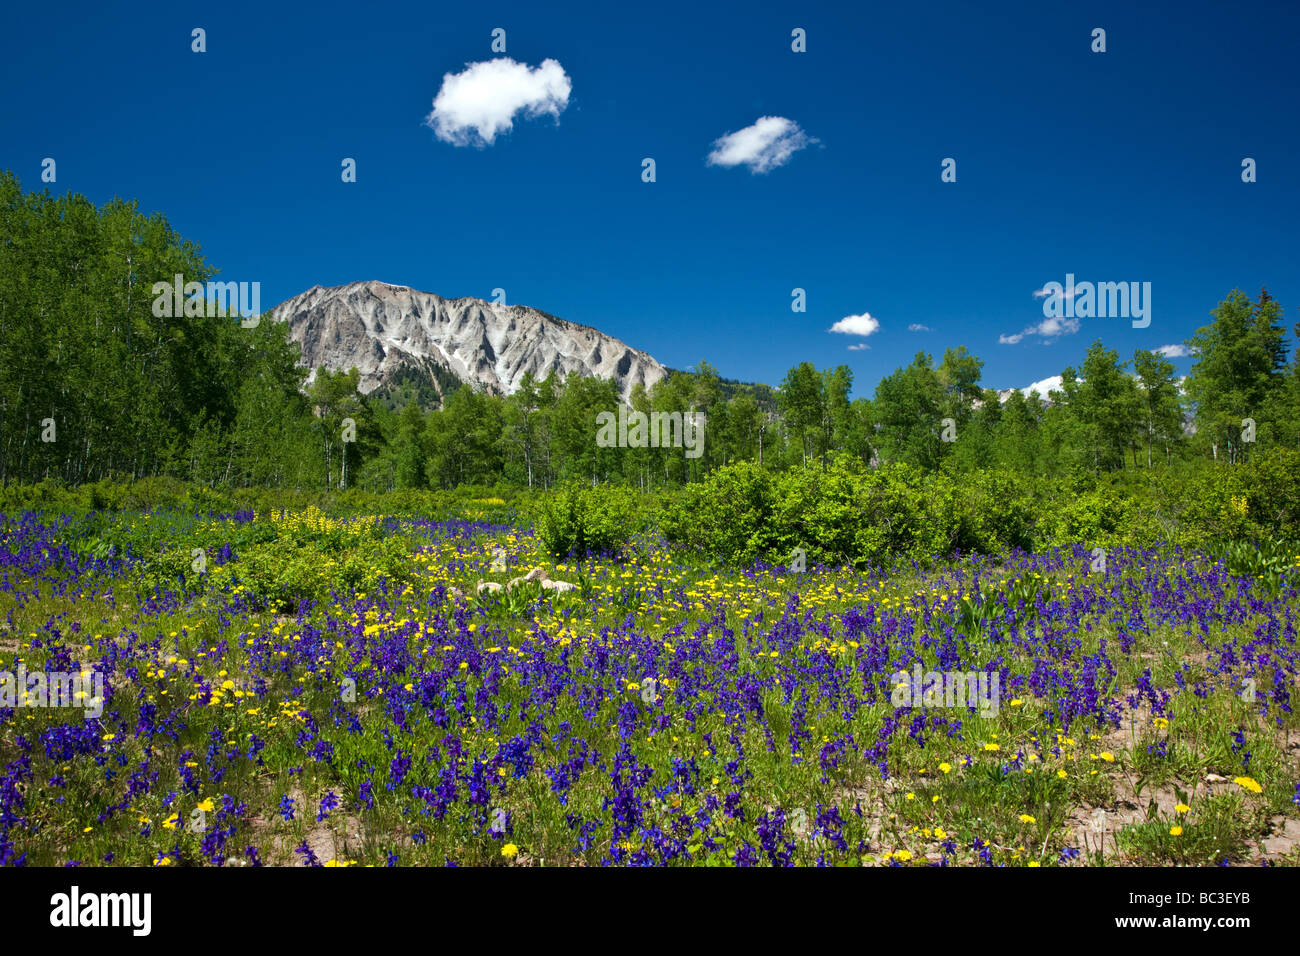 Lupin Golden Banner Larkspur near Kebler Pass Colorado USA Ruby Peak 12 644 is in the distance - Stock Image